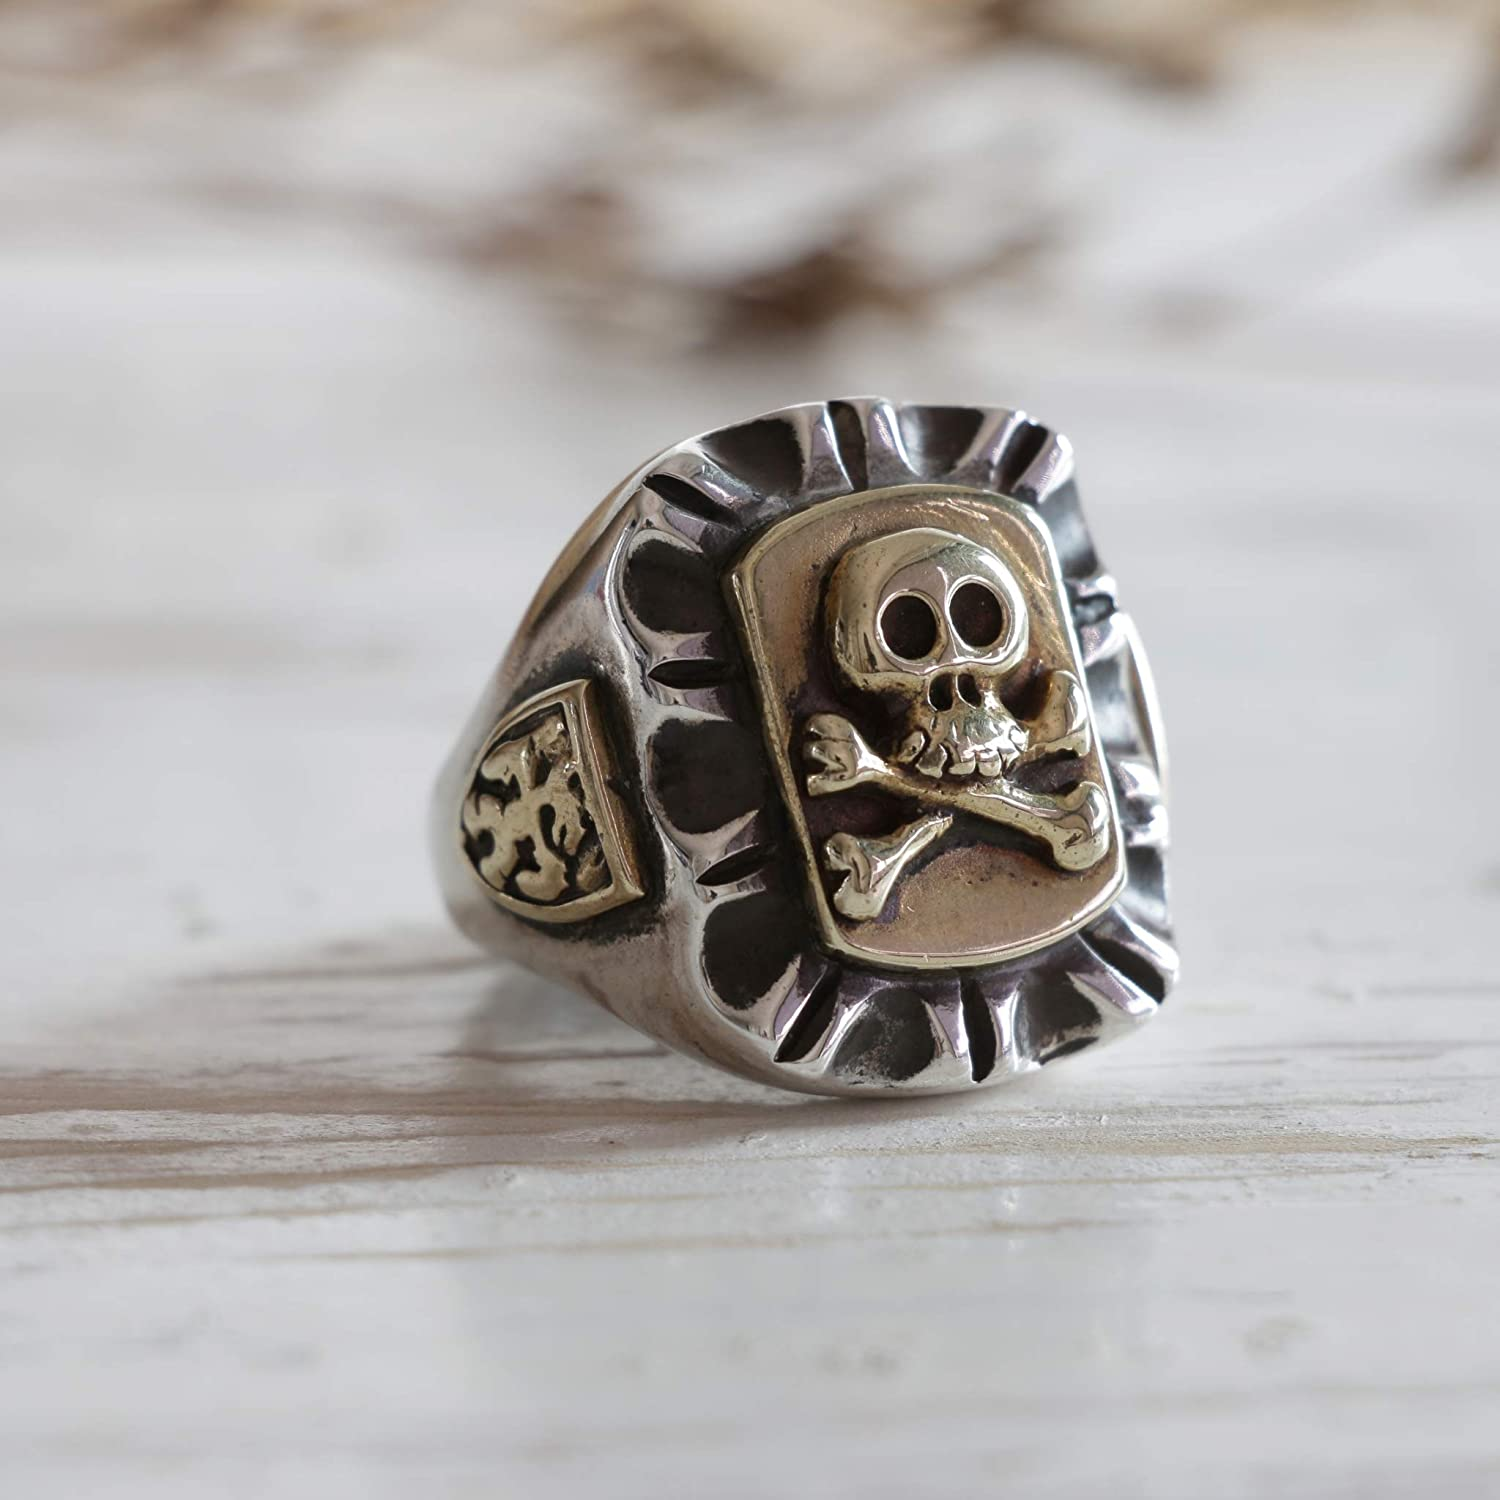 Handmade Mexican Sterling Silver Vintage Style Pirate Skull and Crossbones Caribbean Sea Ring - DeluxeAdultCostumes.com